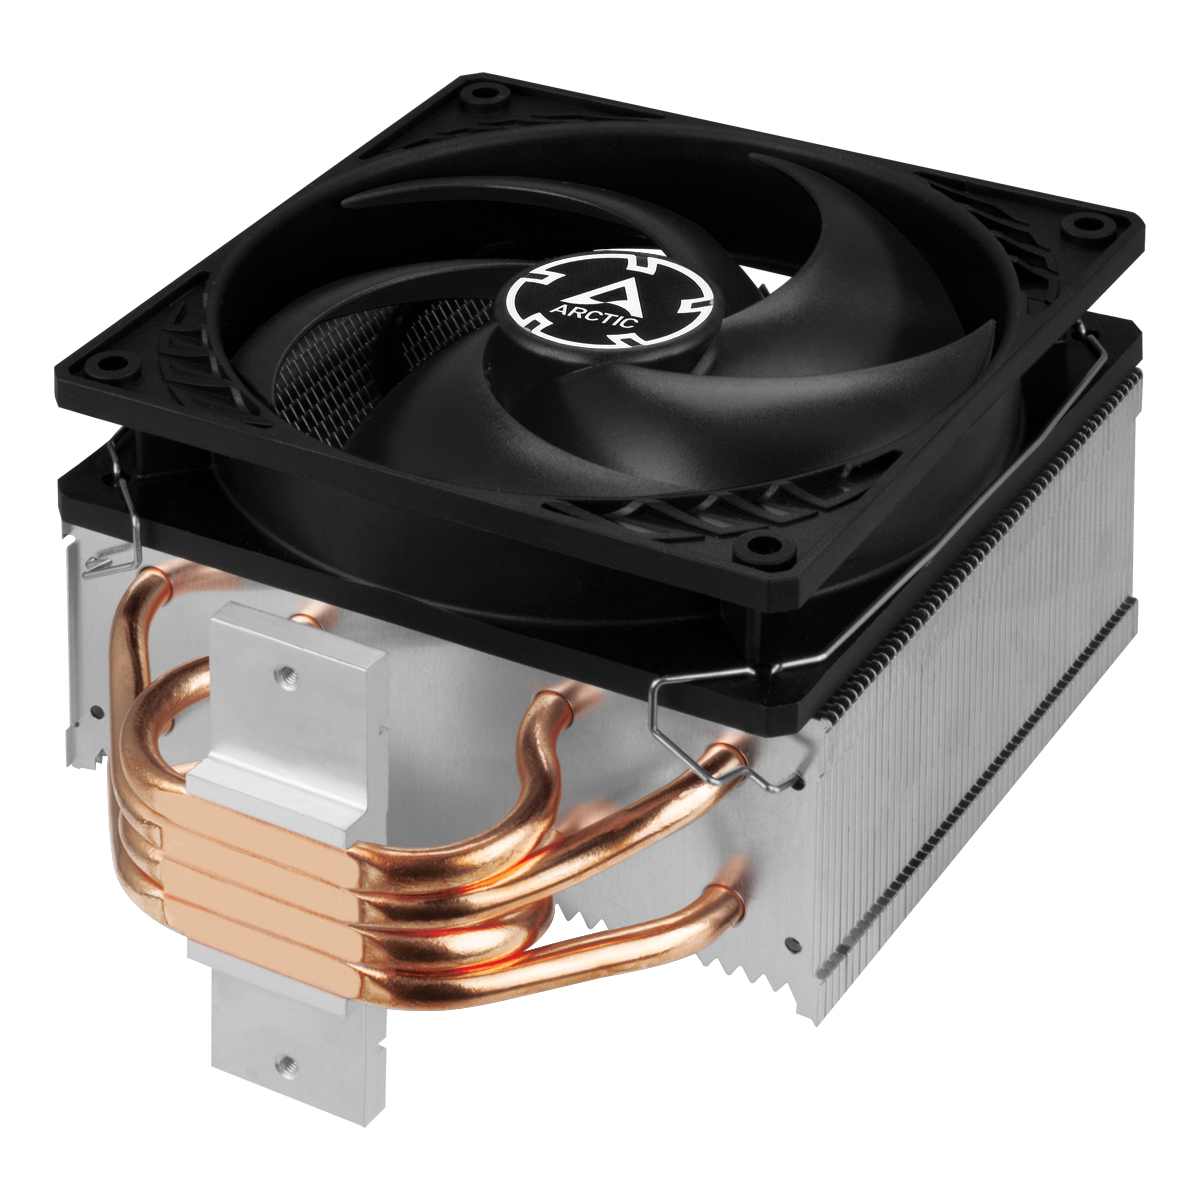 Tower CPU-Kühler mit 120 mm P-Lüfter ARCTIC Freezer 34 Detailansicht Direct Touch Heatpipes